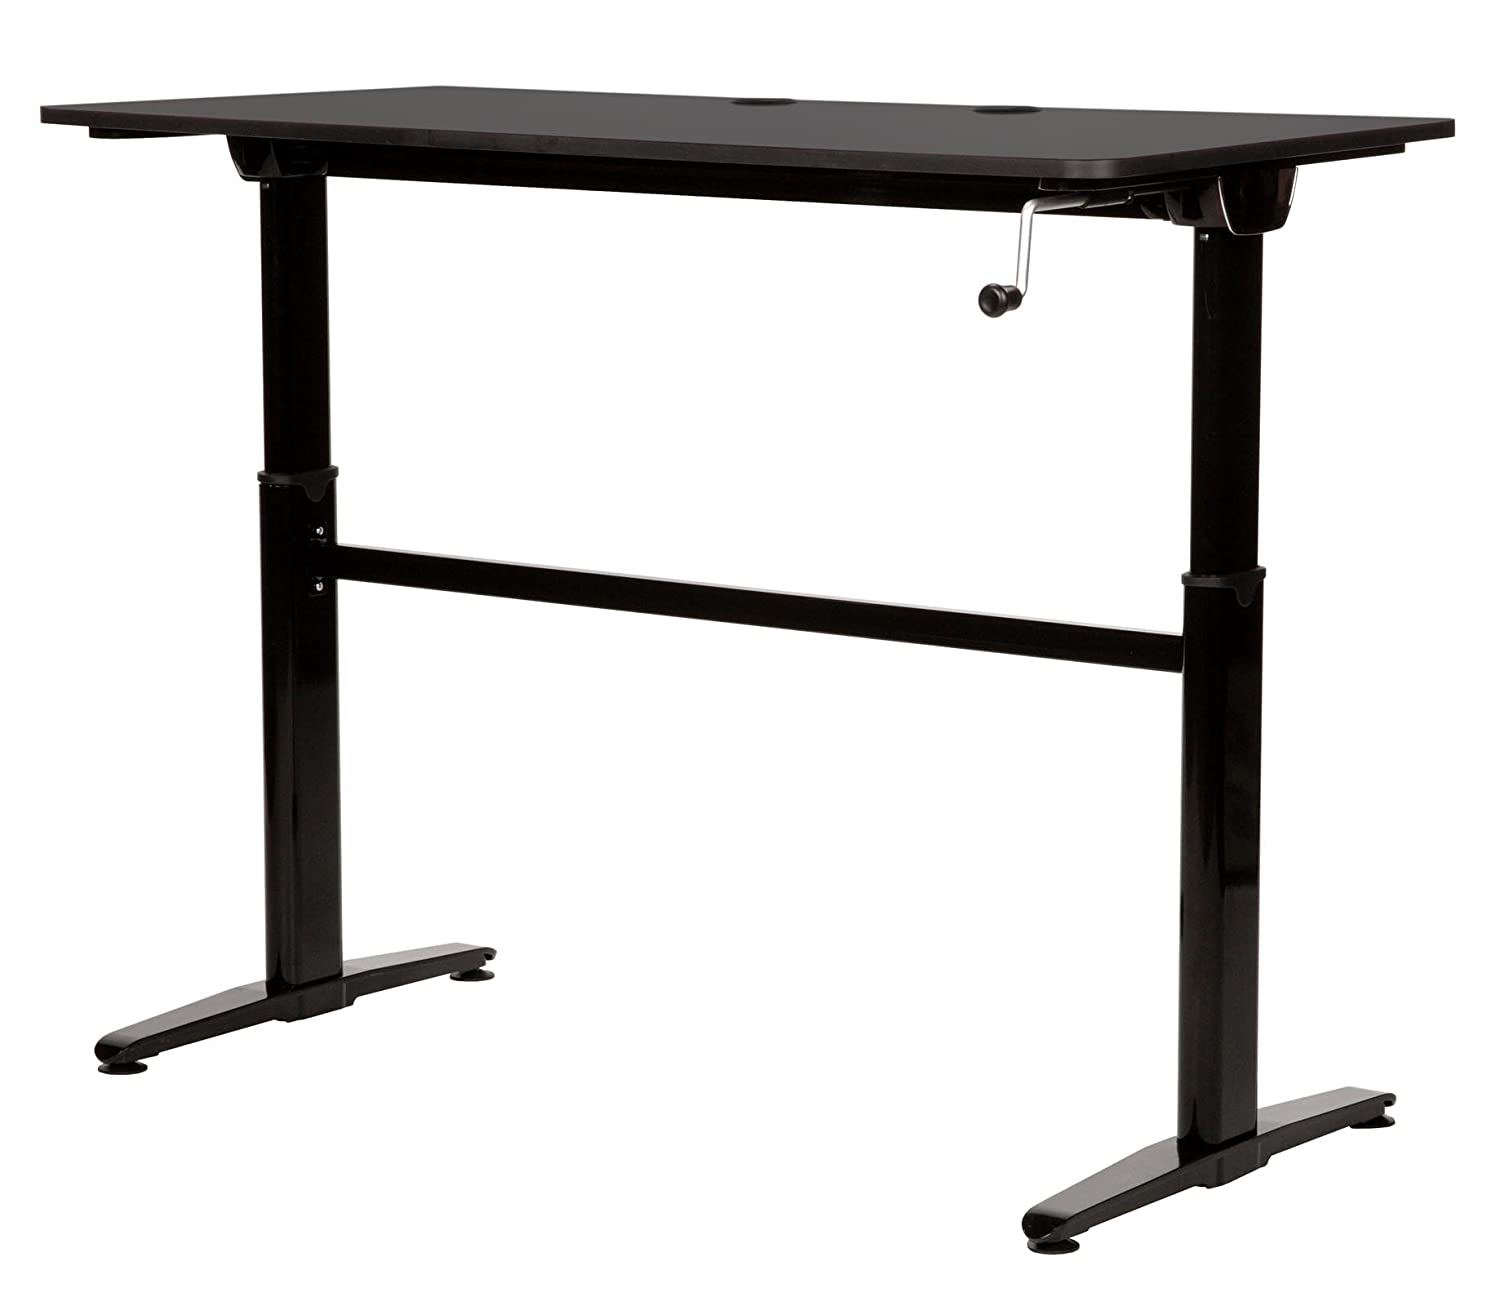 rolling desks leg frame legs manual rocky mountain com height sku desk adjustable table onsingularity